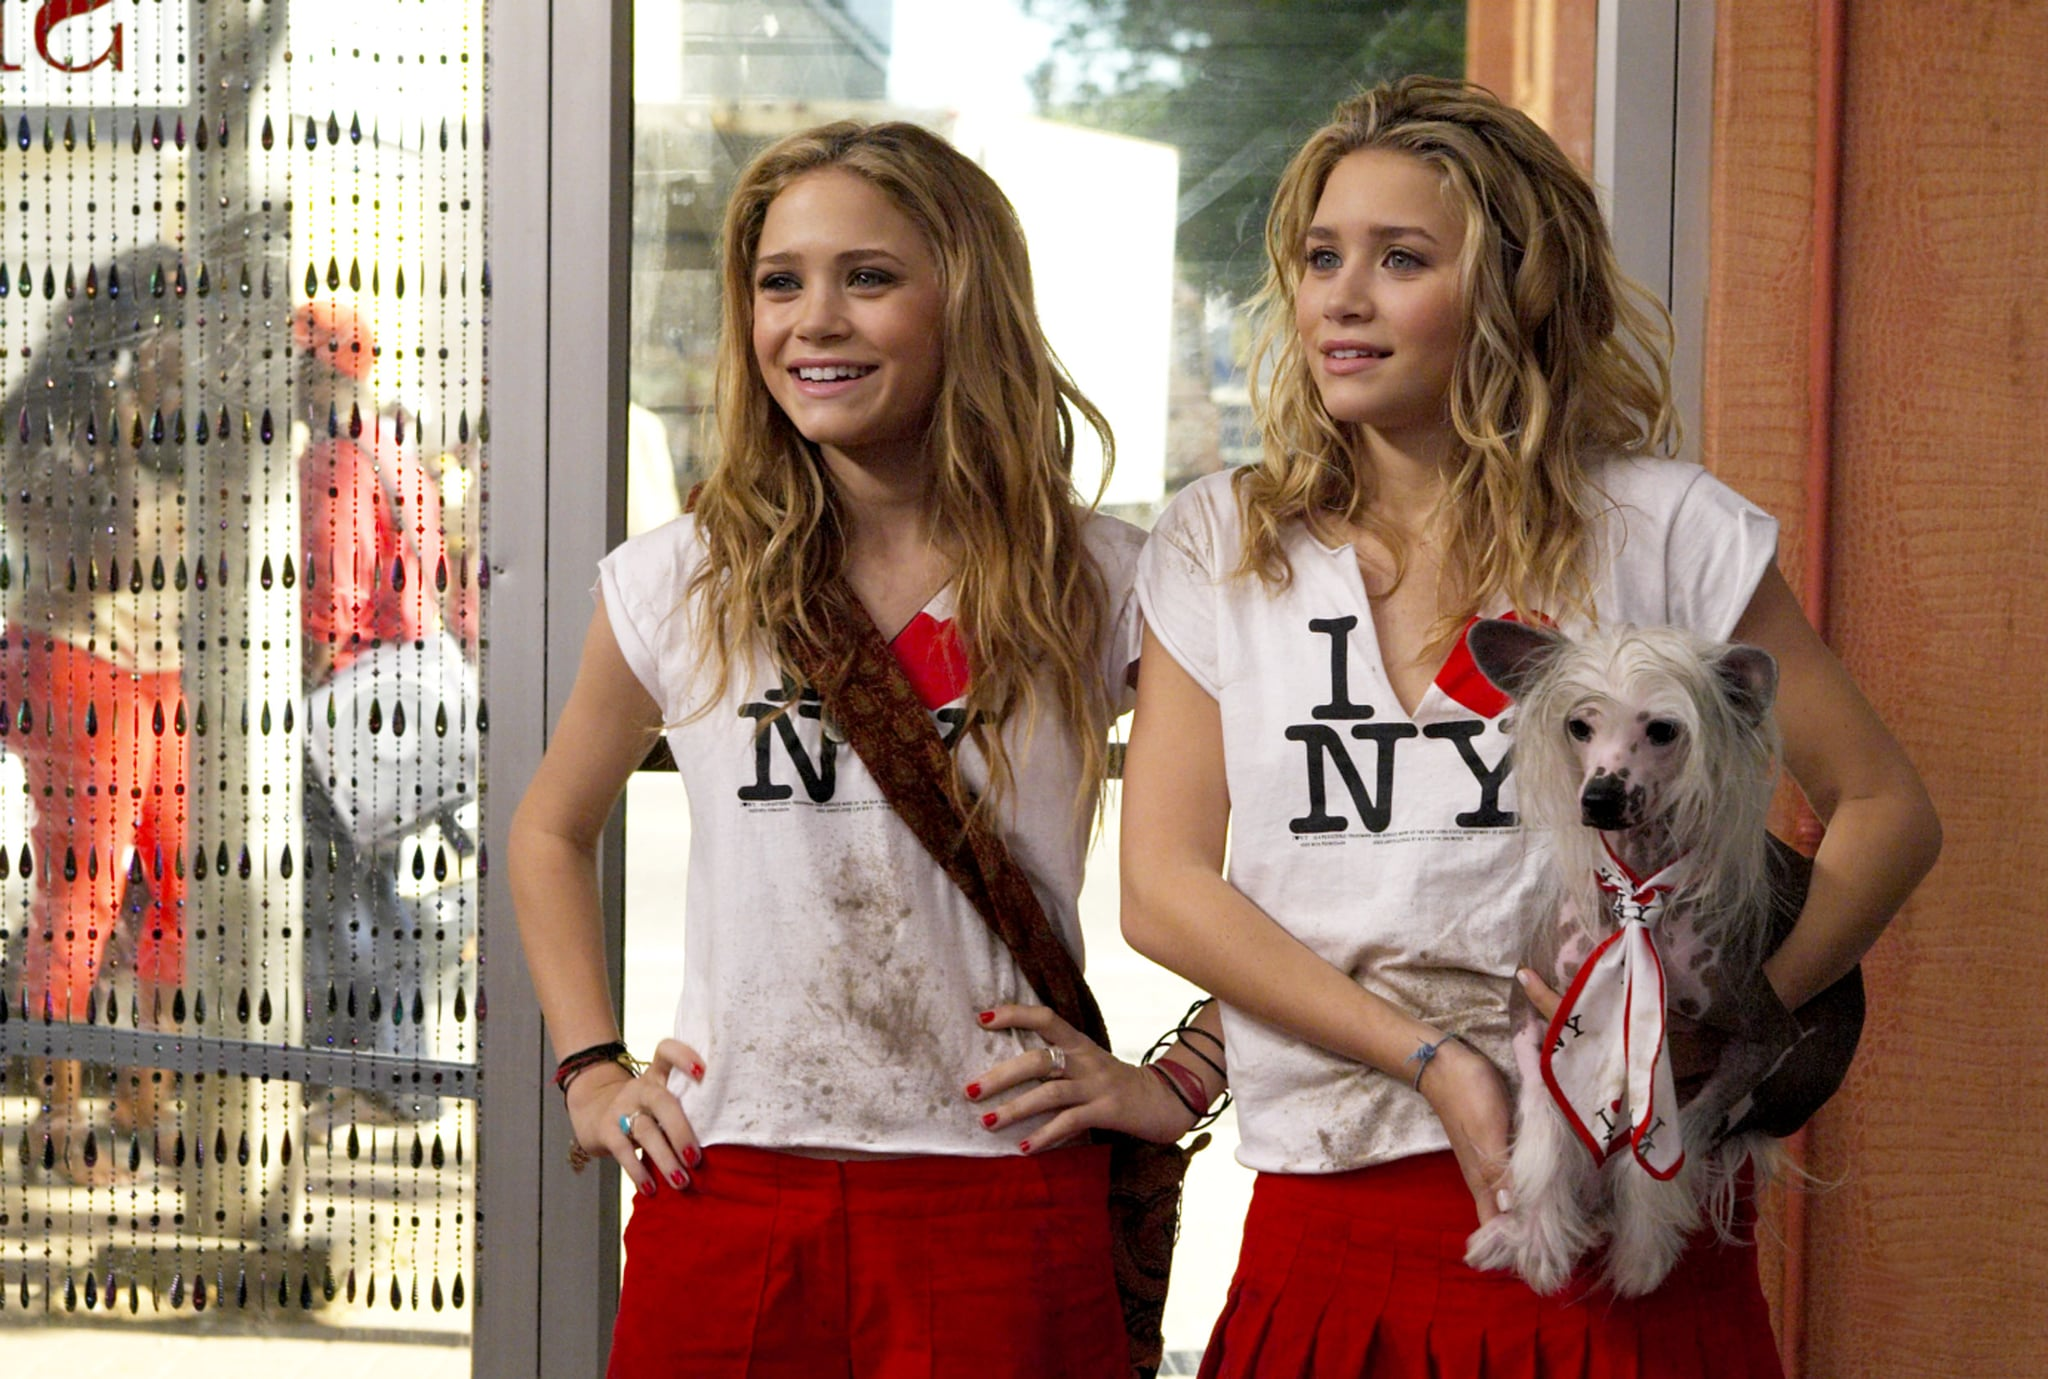 NEW YORK MINUTE, Mary-Kate Olsen, Ashley Olsen, 2004, (c) Warner Brothers/courtesy Everett Collection